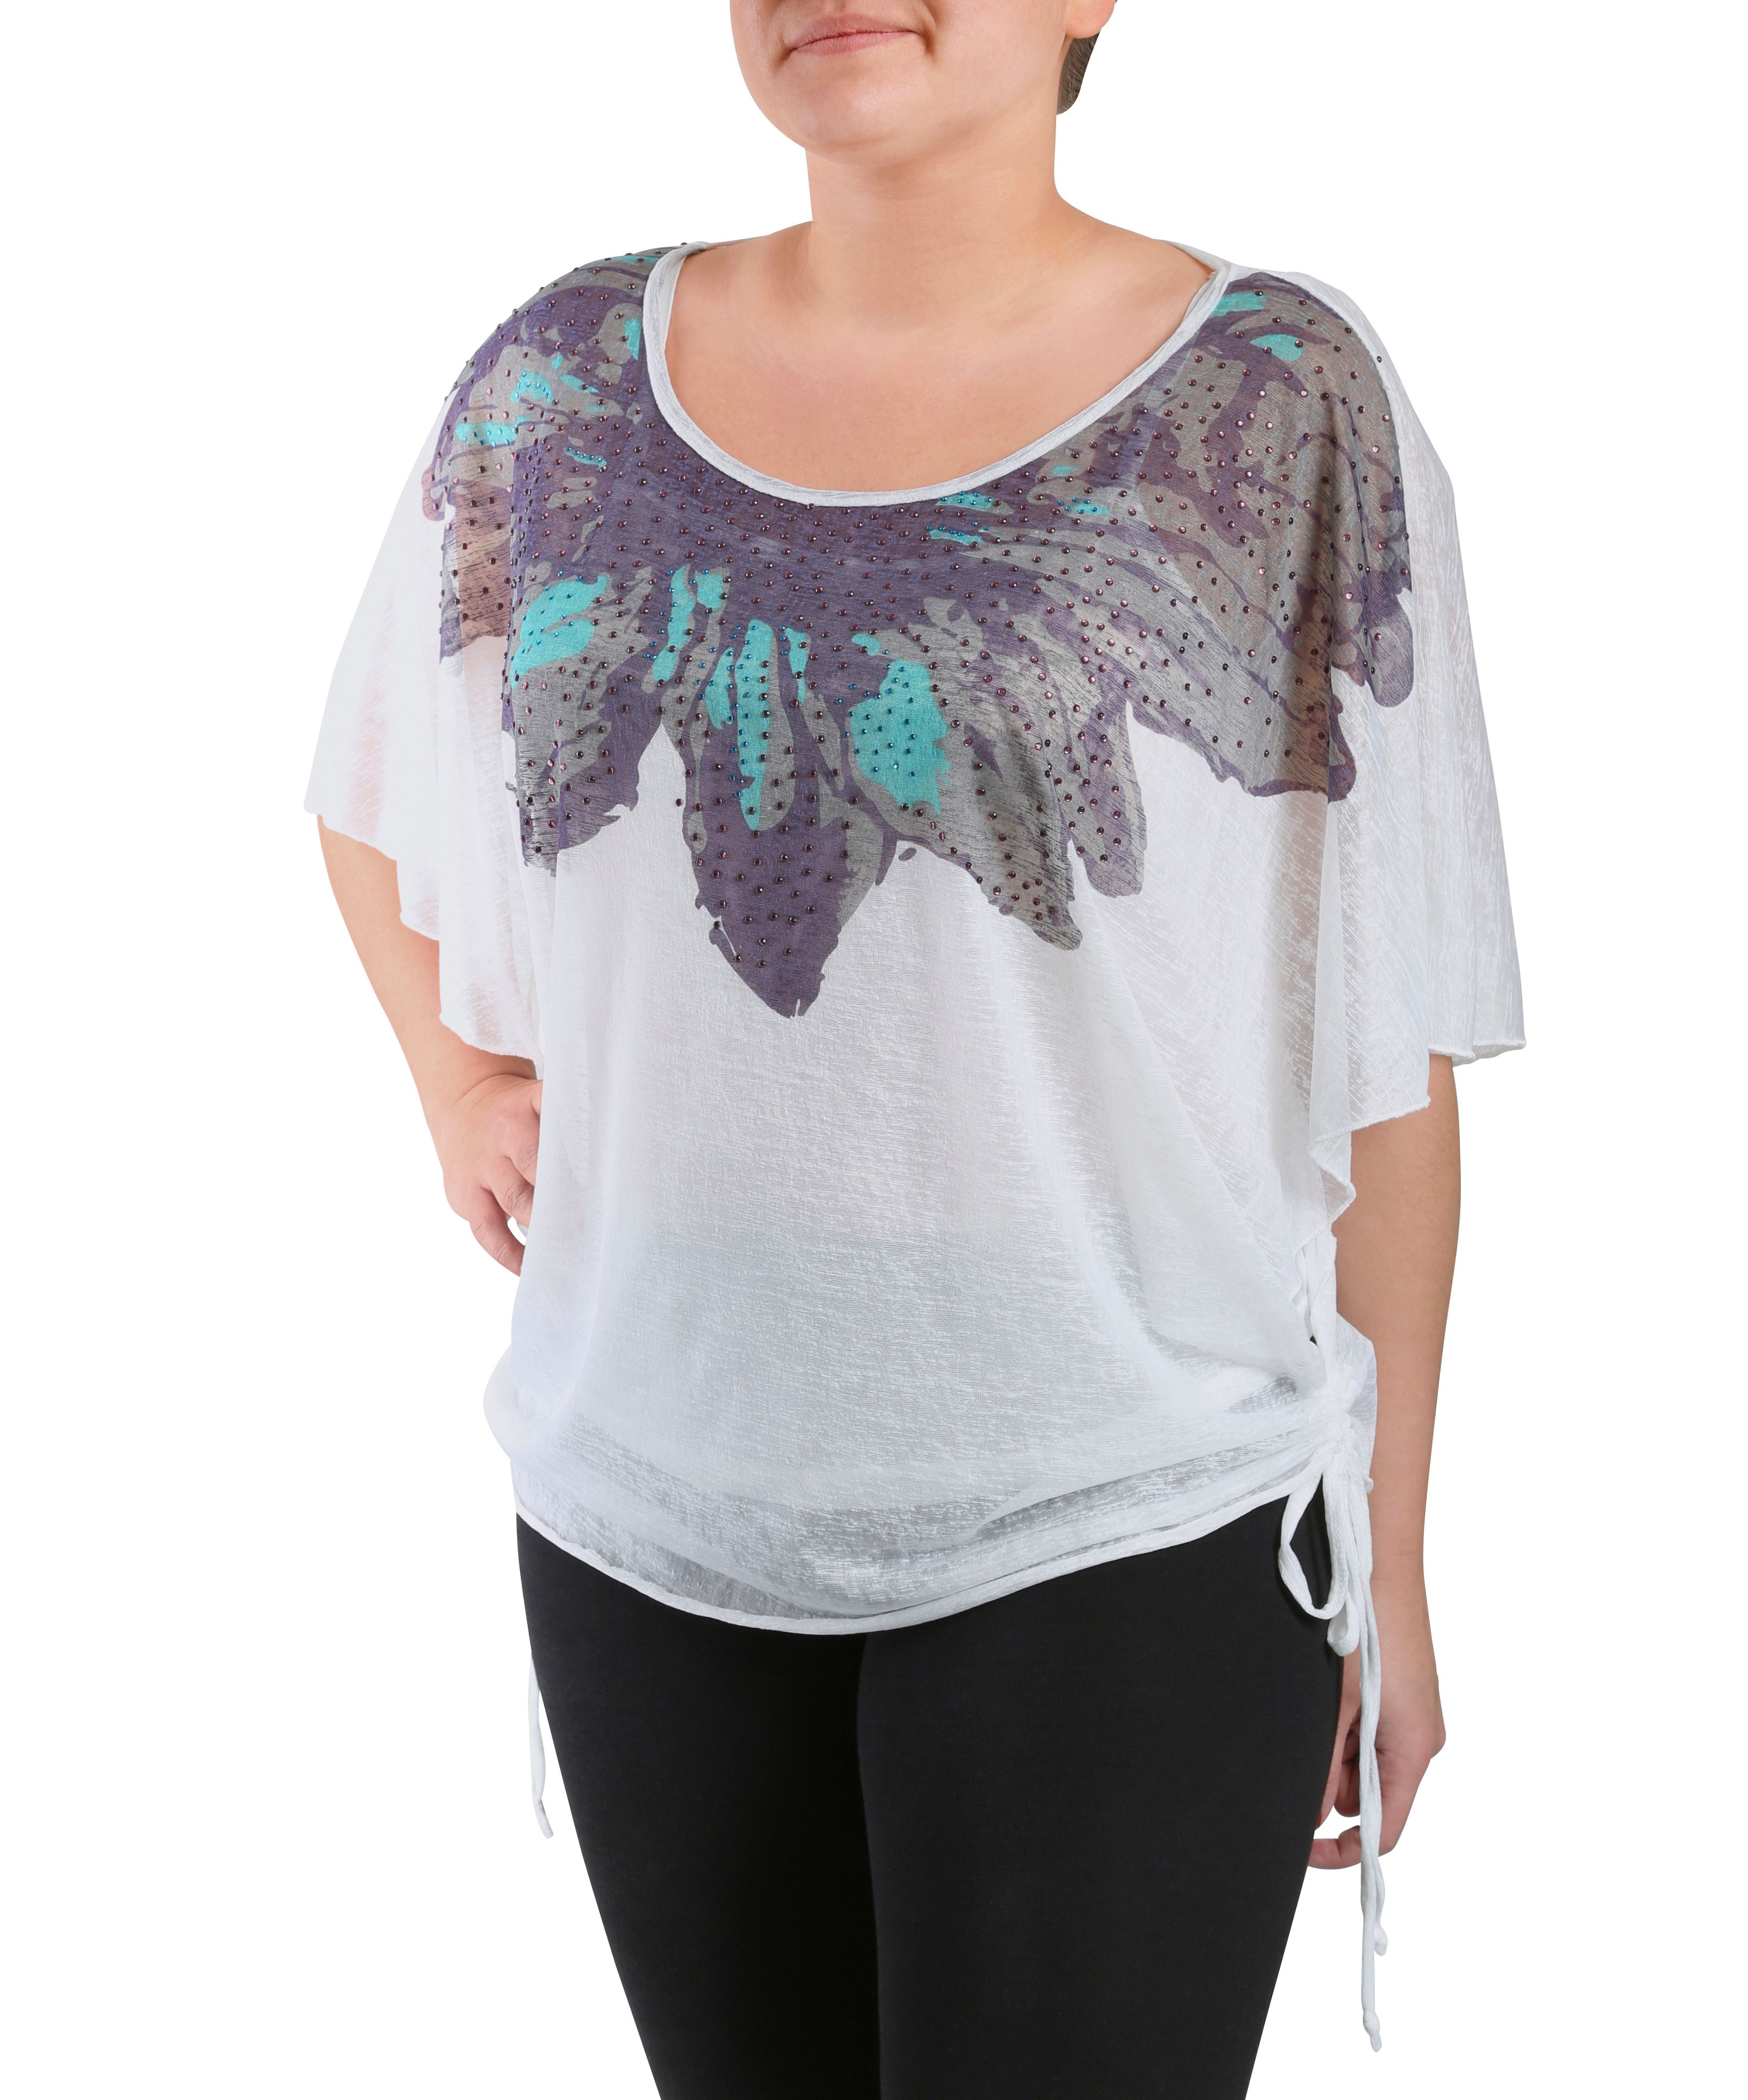 Kimono top with neck embellishment